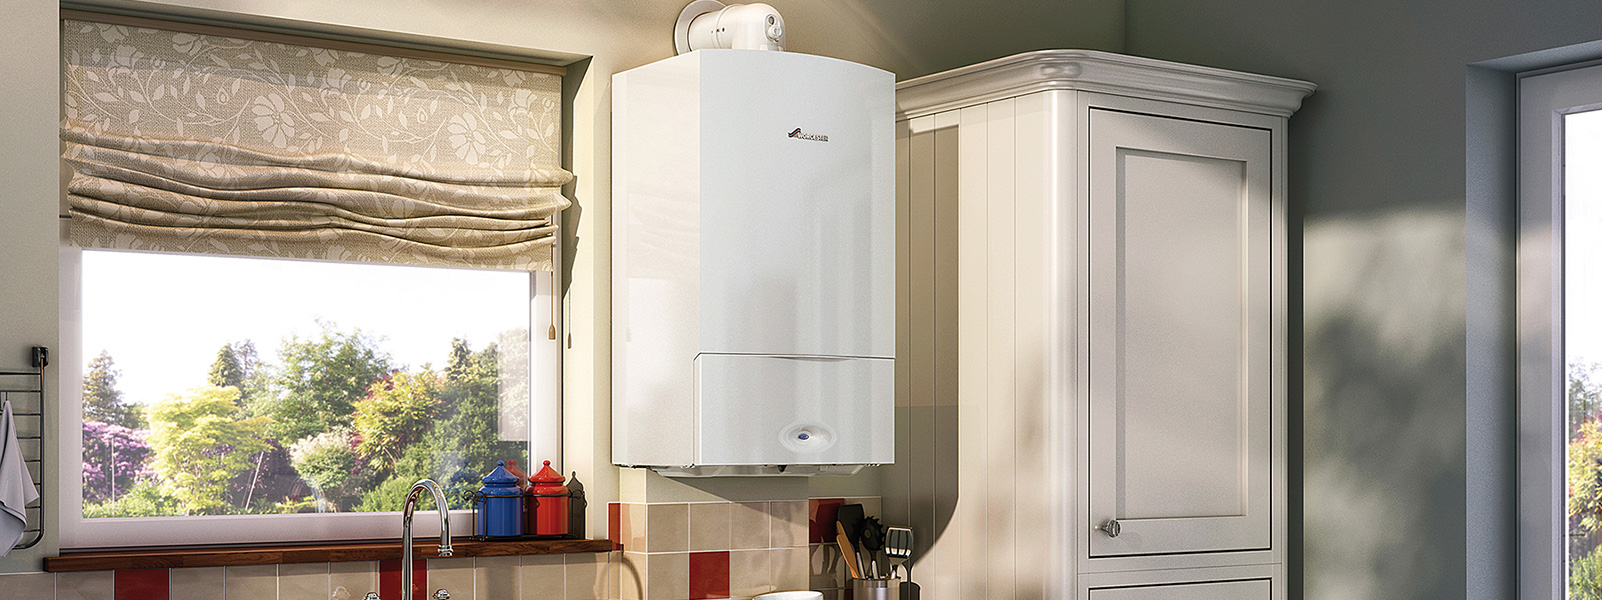 Boiler Installations by Professional Rutland Gas Plumbers